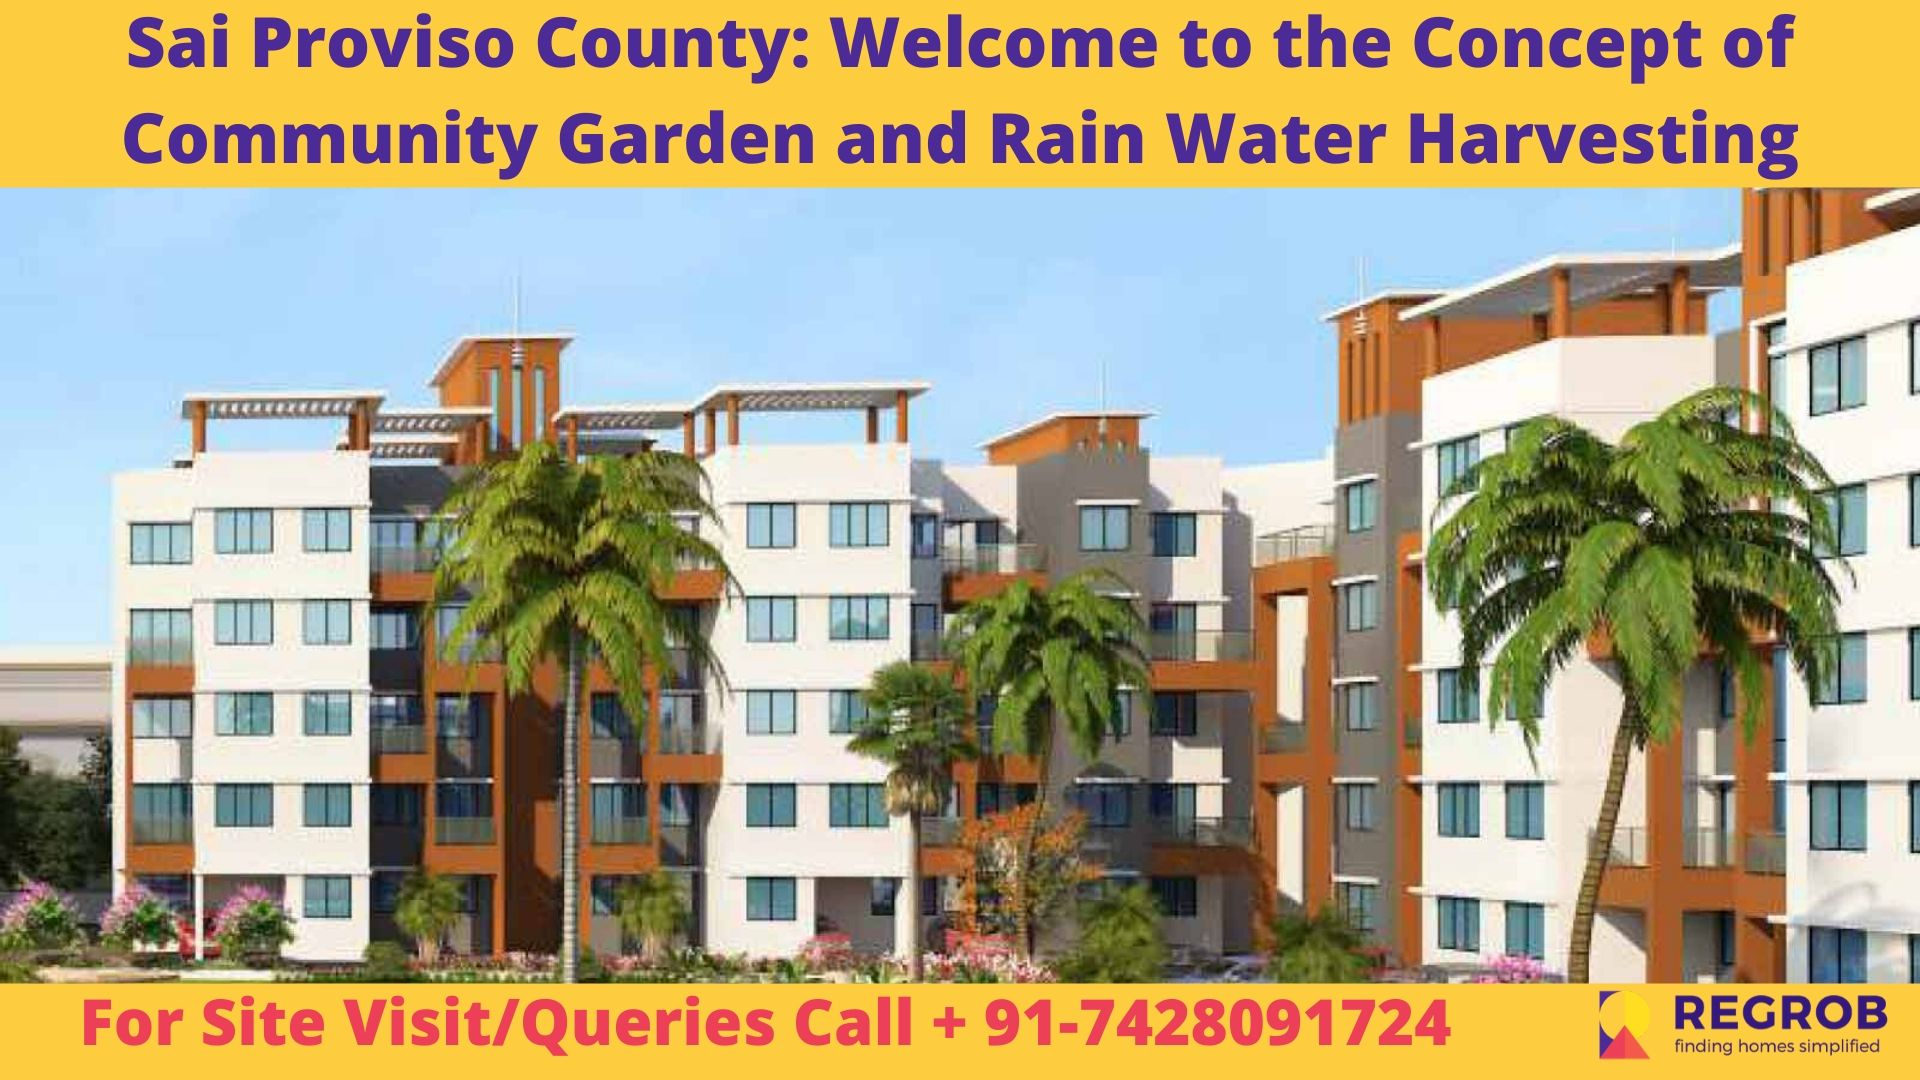 Sai Proviso County_ Welcome to the Concept of Community Garden and Rain Water Harvesting